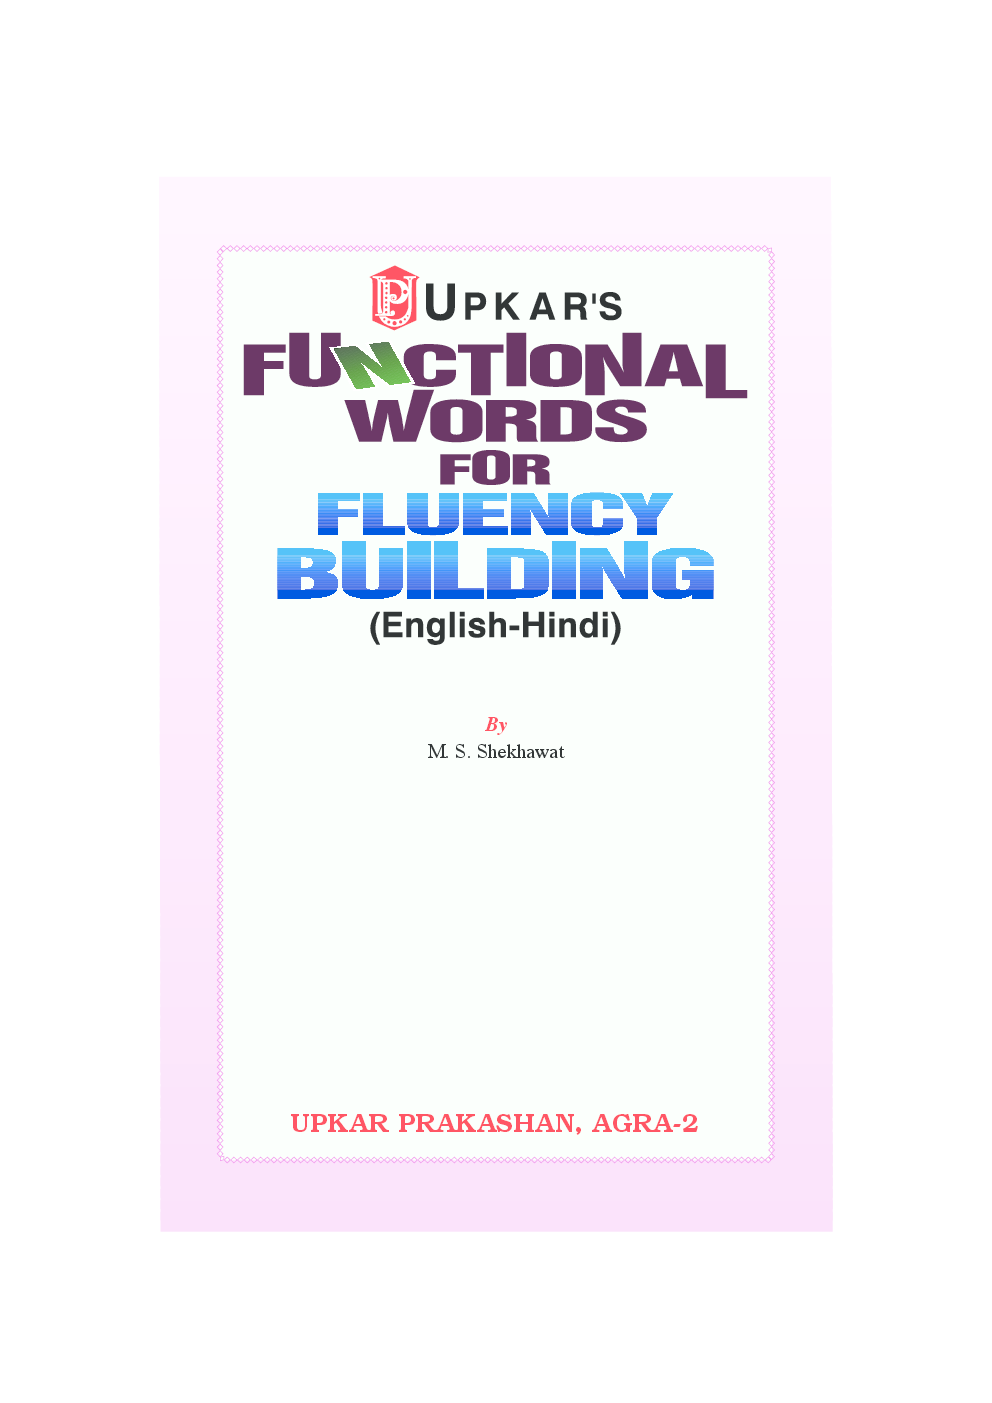 Functional Words for Fluency Building (Eng.-Hindi) - Page 2